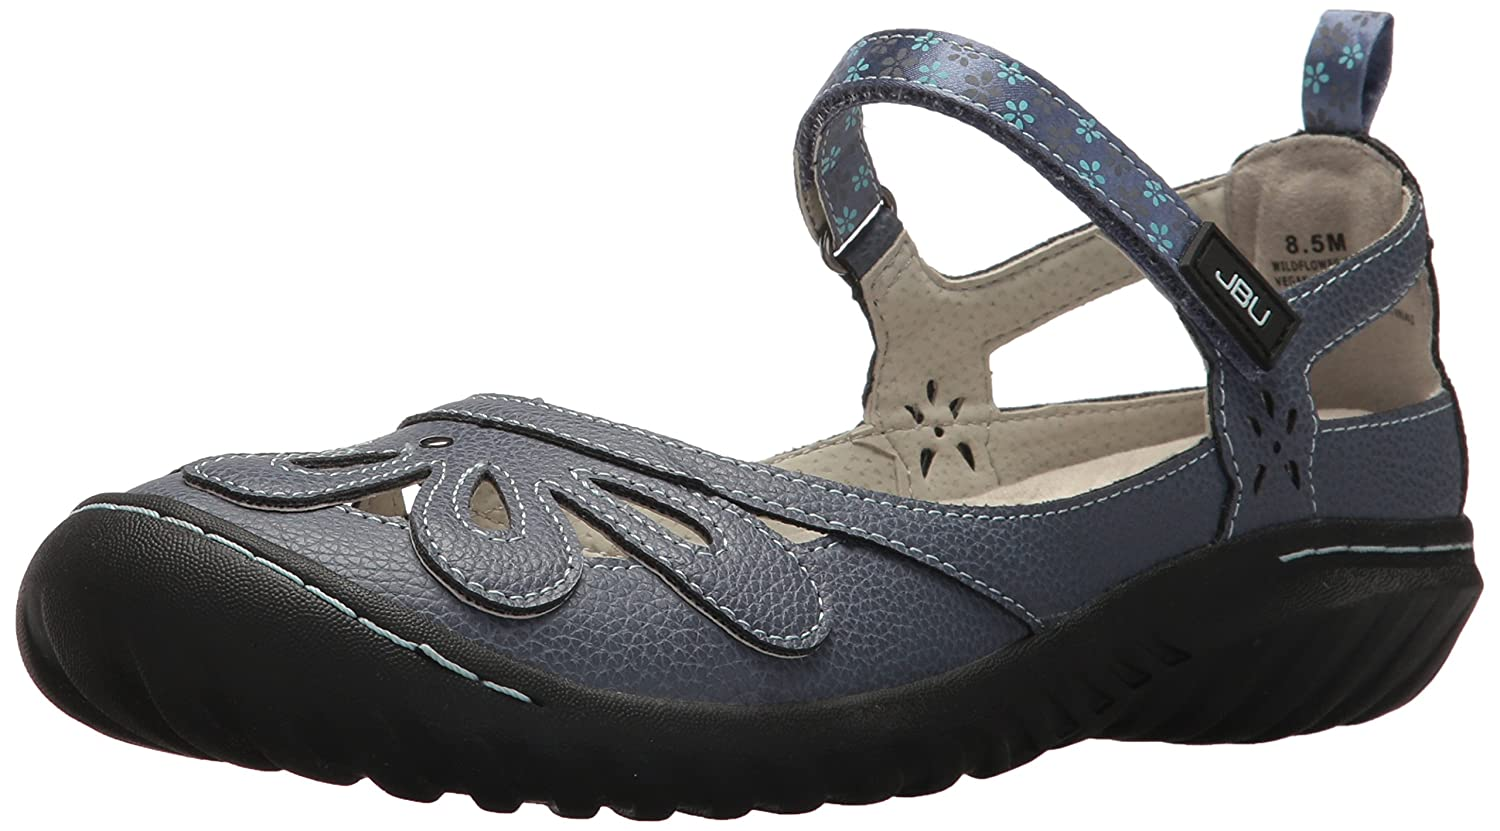 JBU by Jambu Women's Wildflower Encore Mary Jane Flat B074KPR9CC 8.5 B(M) US|Denim